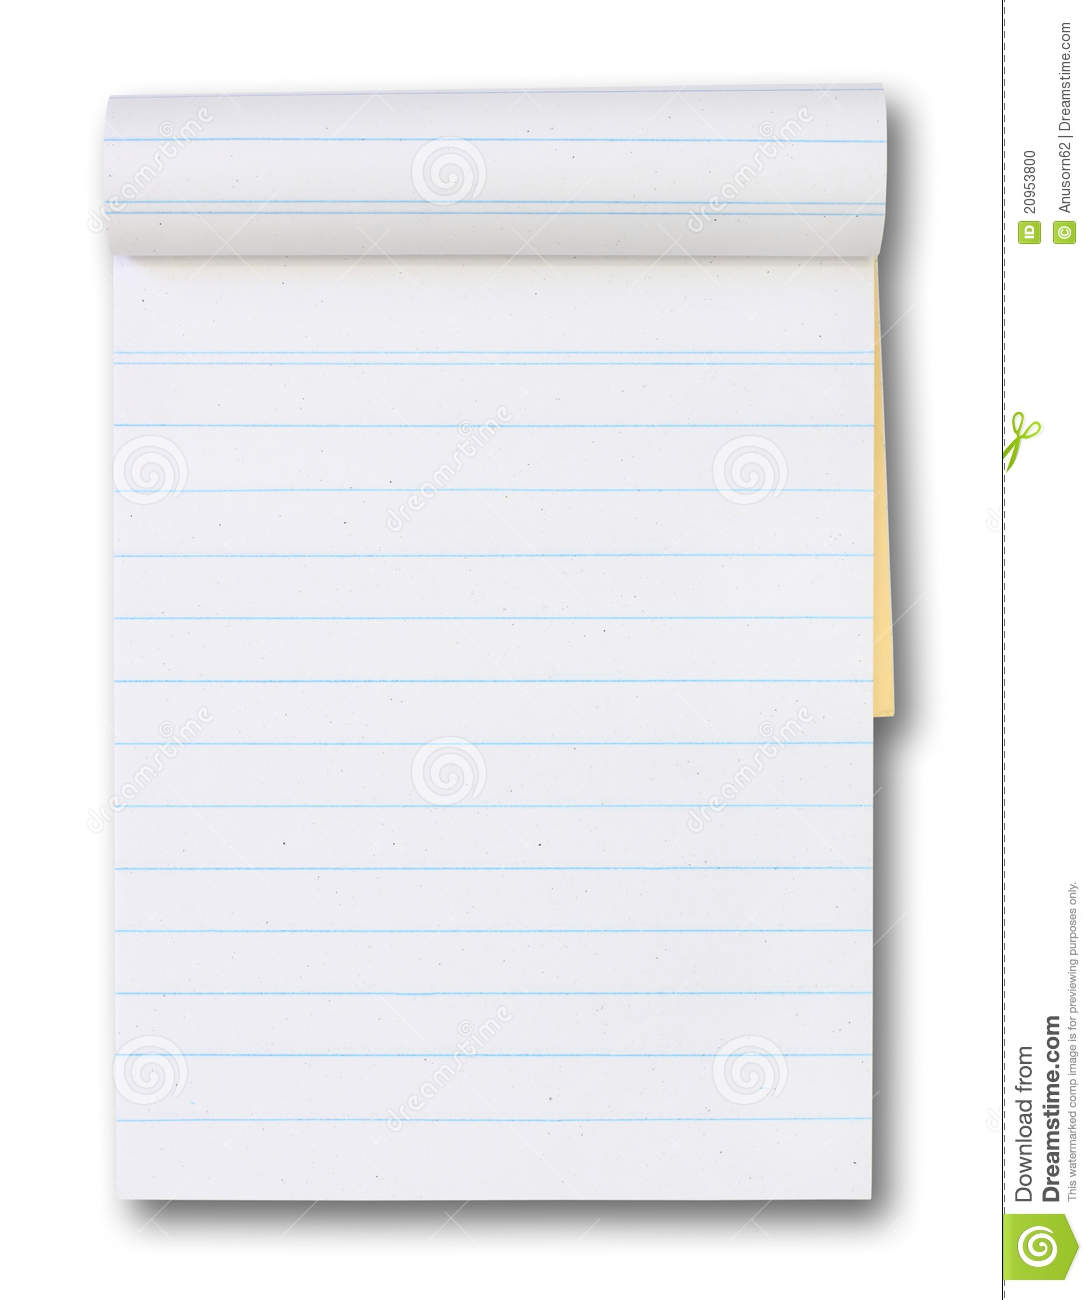 Drawing Smooth Lines In Photo With Tablet : Blank paper tablet with a blue lines stock photo image